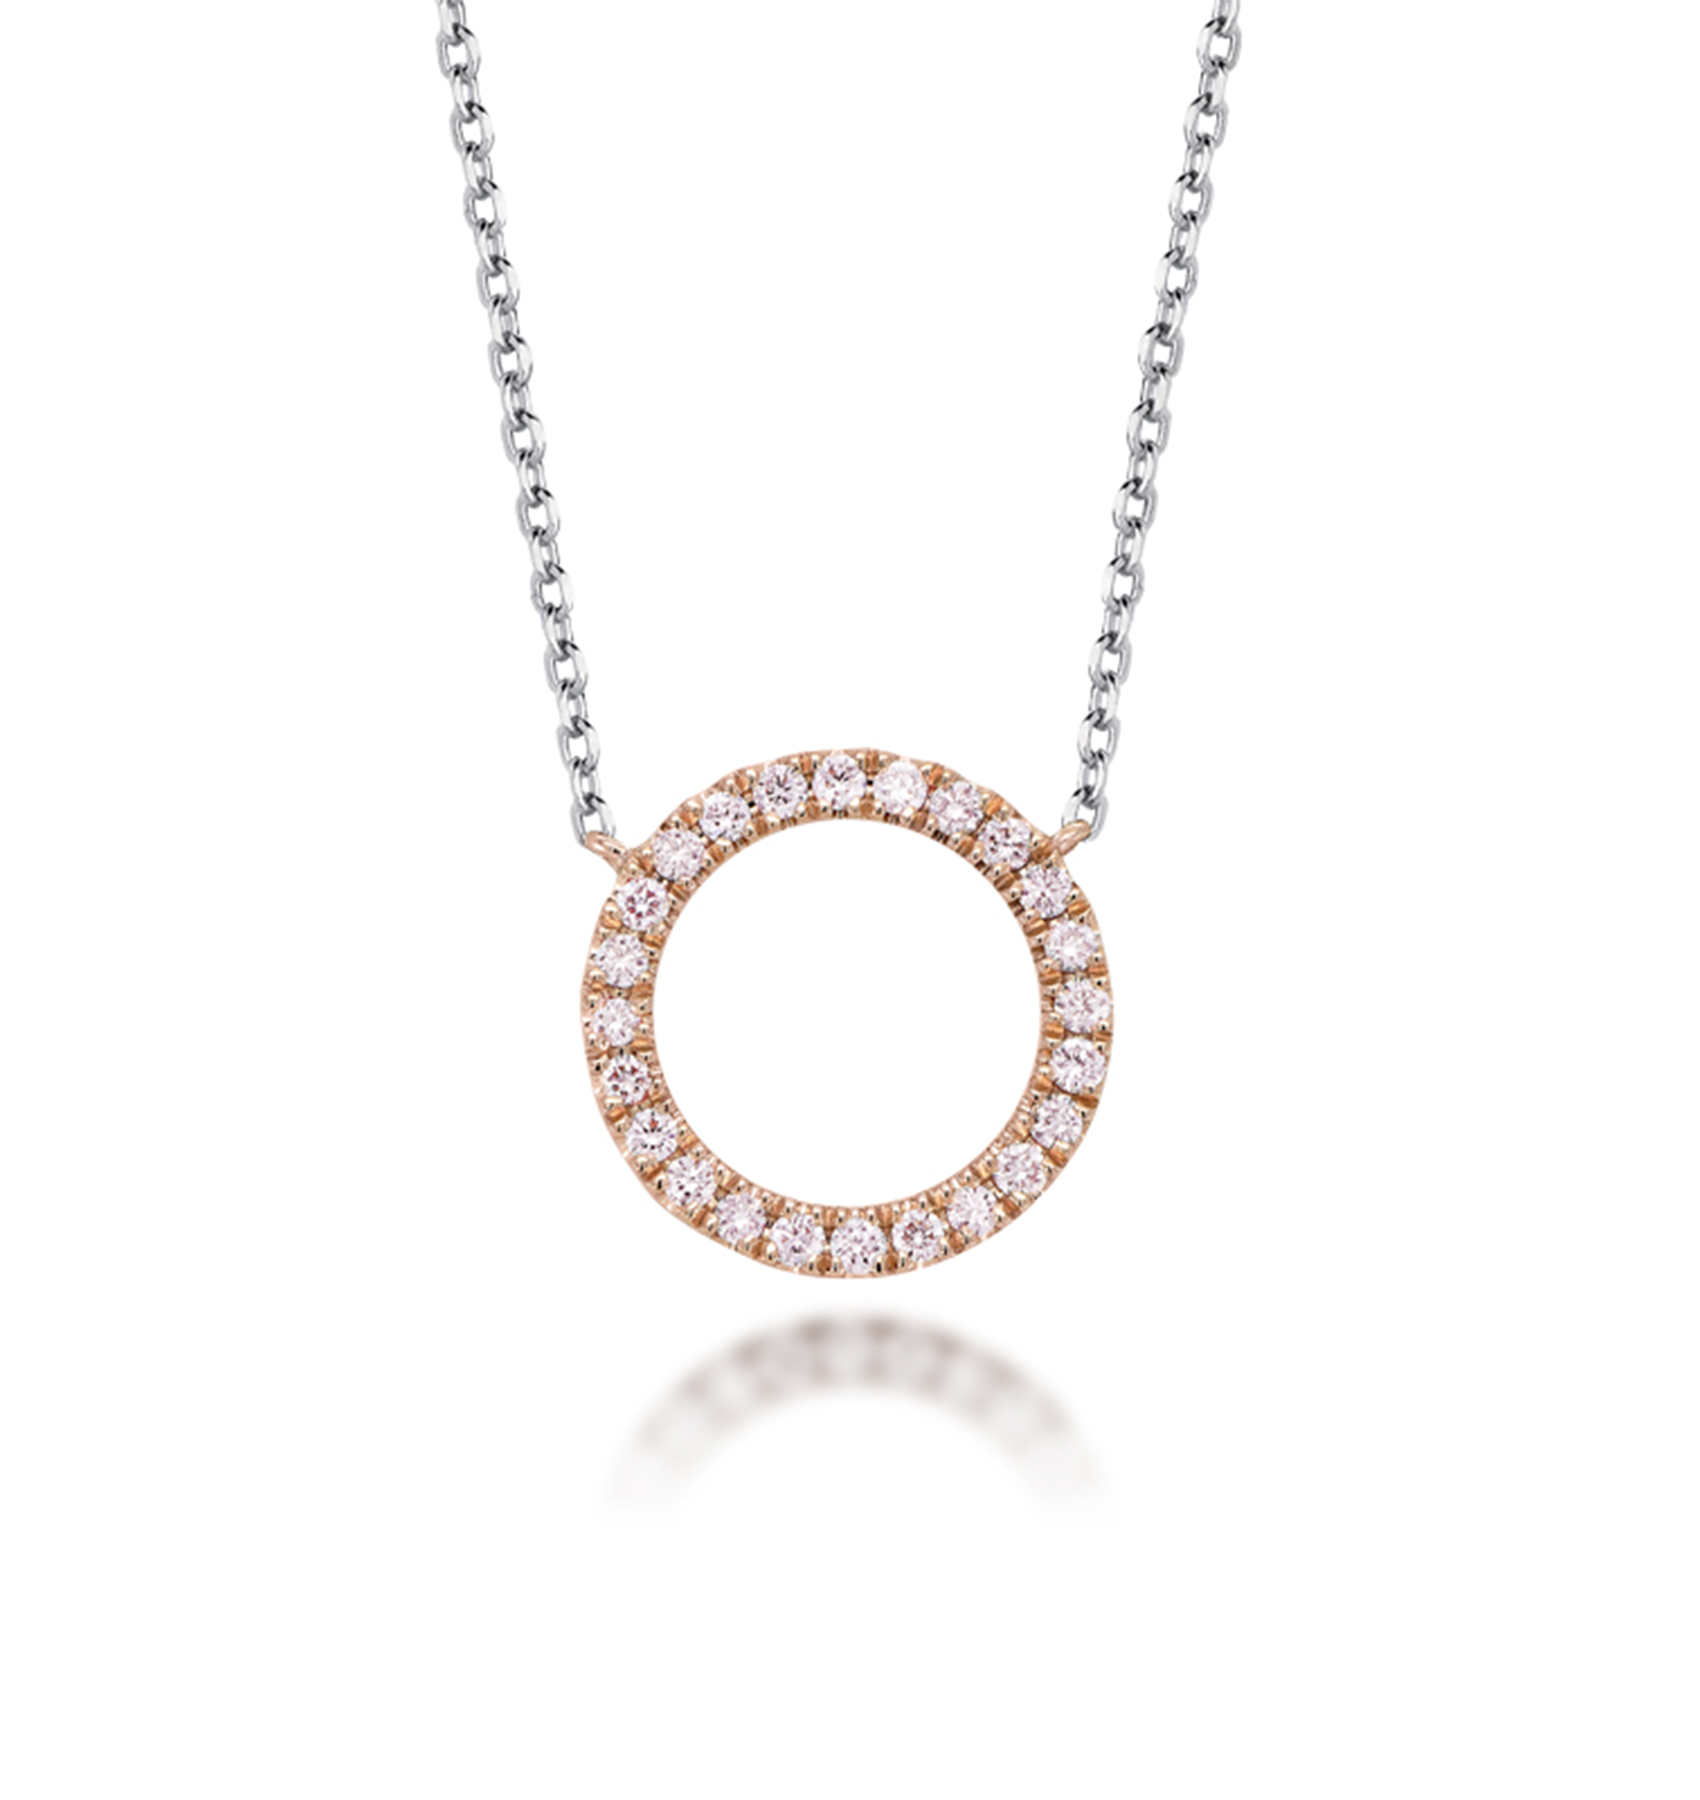 Photo of Blush Pink and White Diamond Necklace